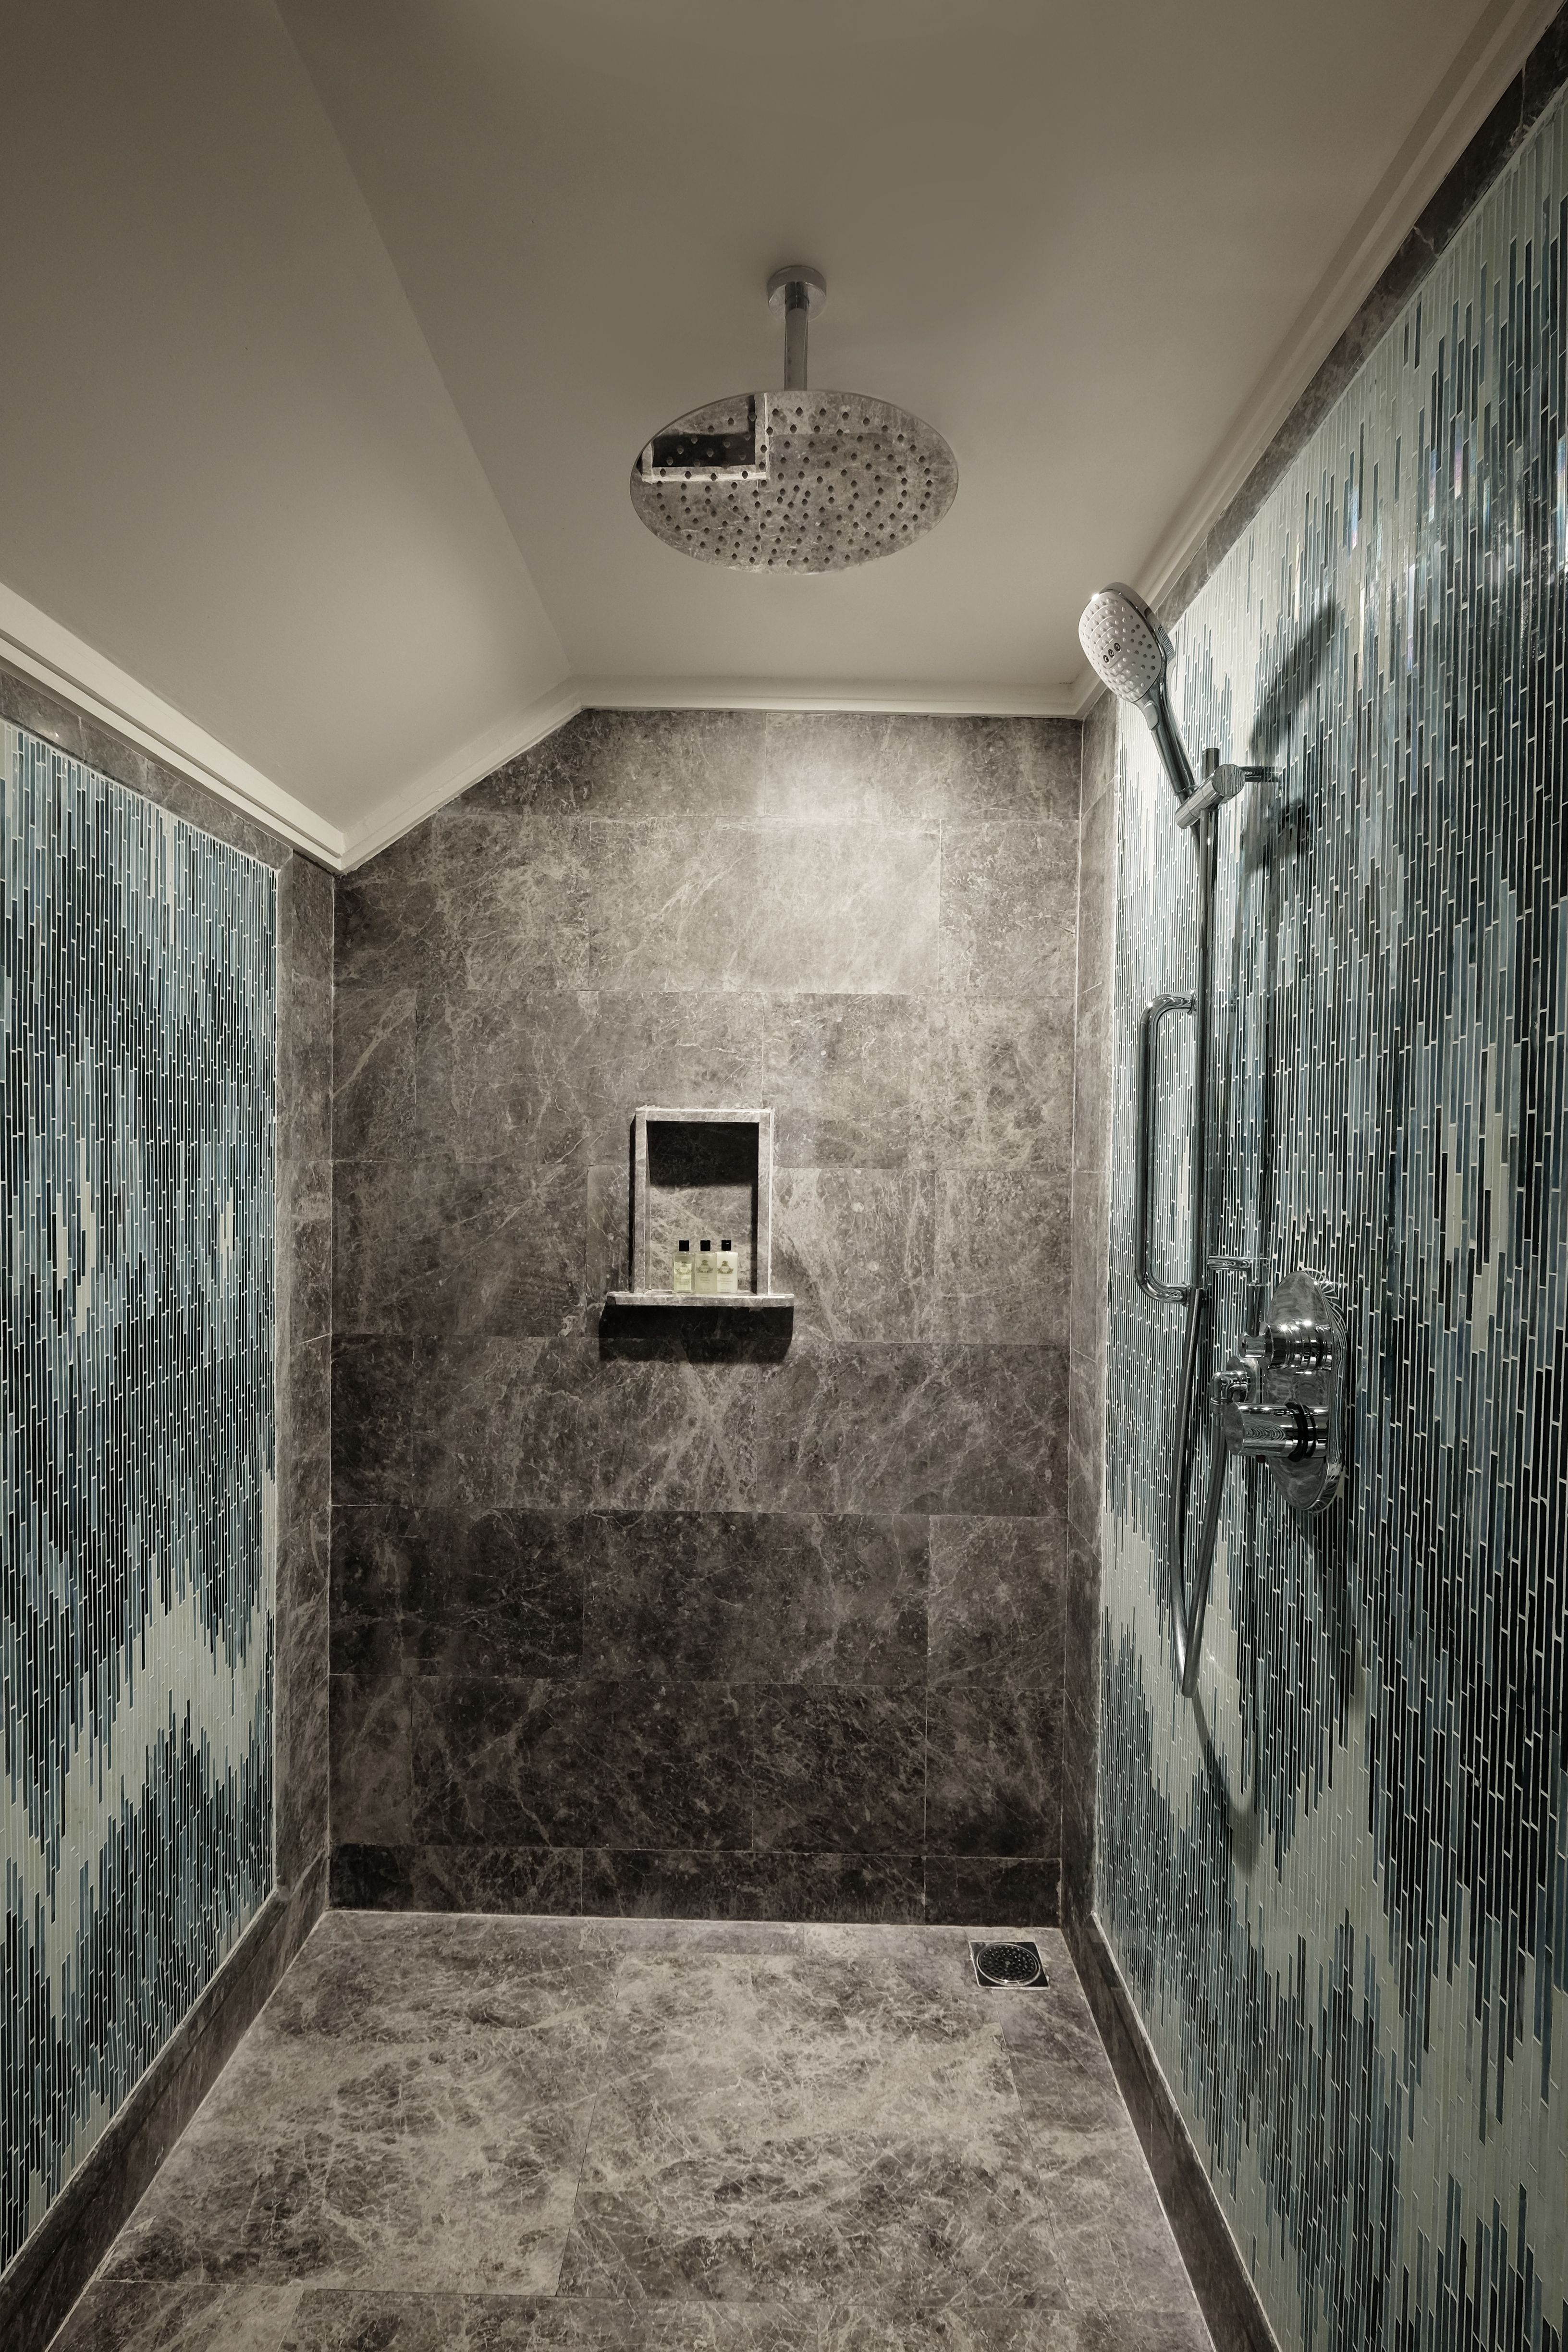 Great Shower Wall Design In Bali Hansgrohe Showers Are Impressive In The Bathroom Click And Explore The Product Hansgrohe Contemporary Shower Bathroom Design